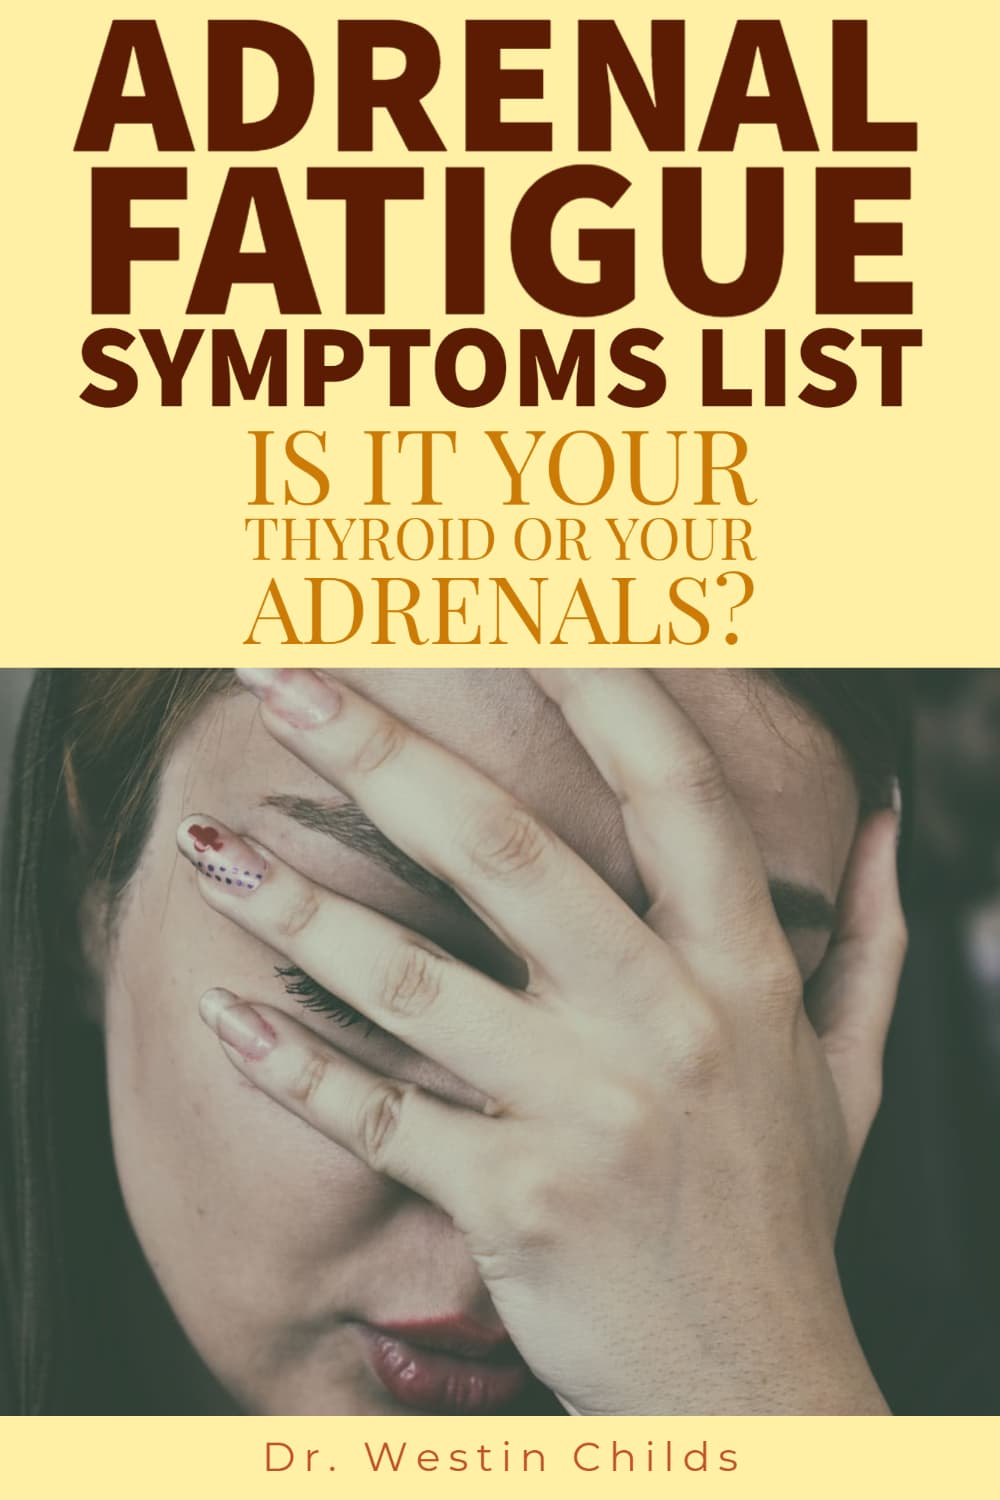 adrenal fatigue symptoms list